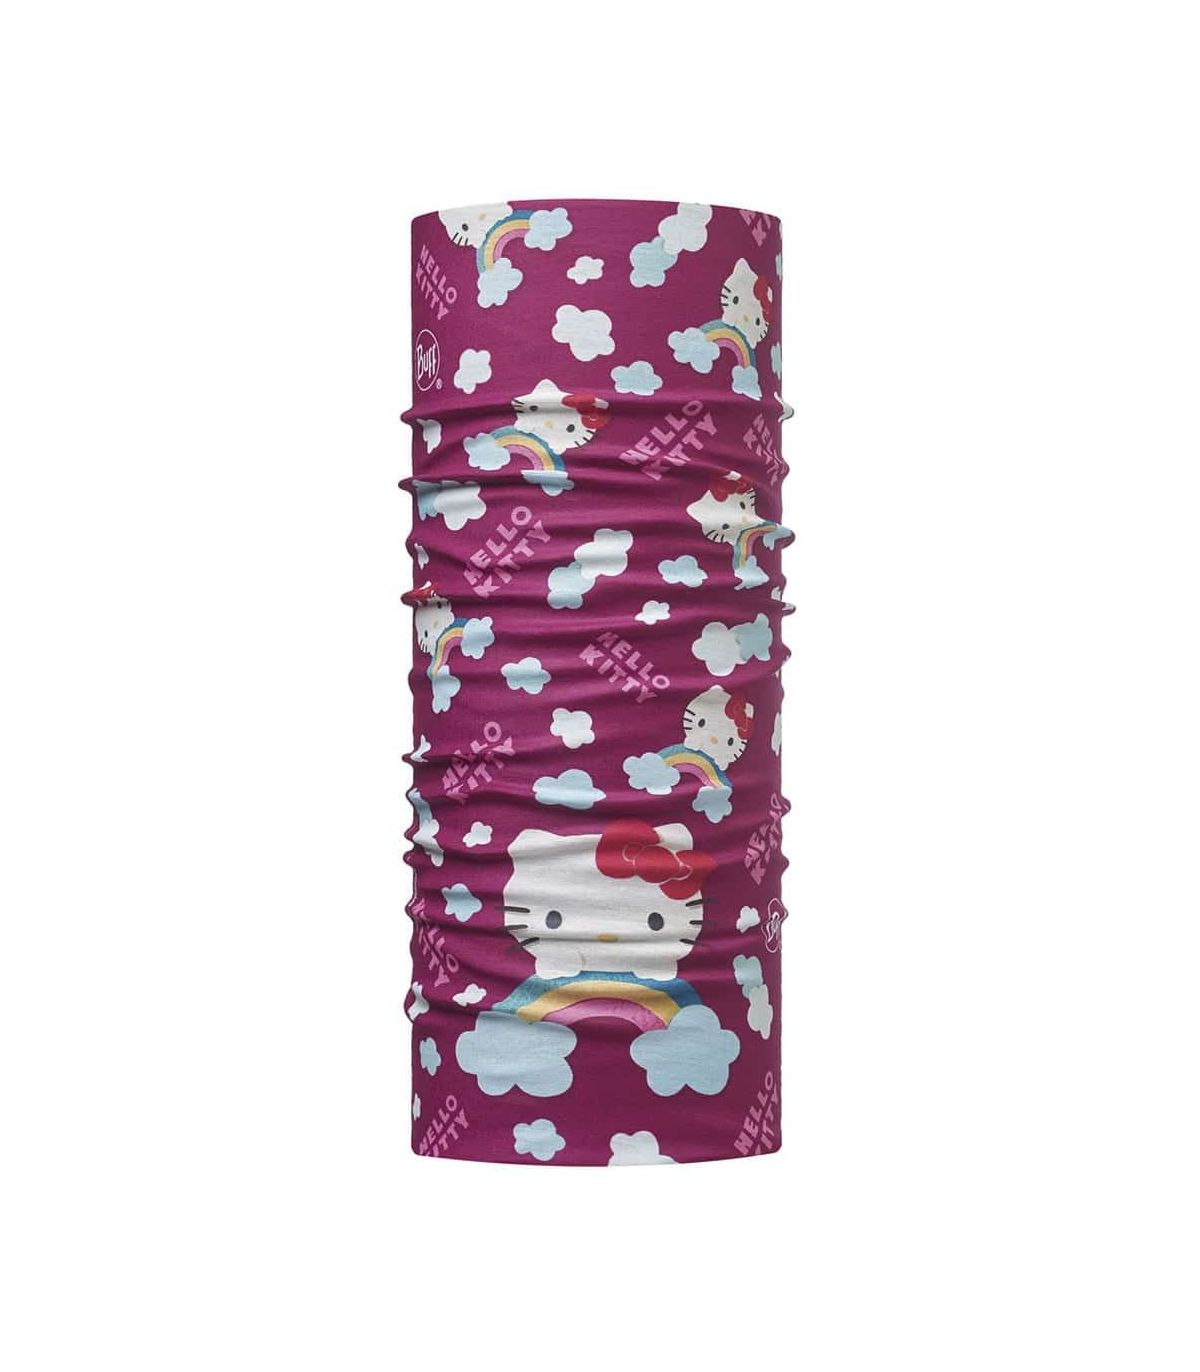 Buff Hello Kitty Original Buff Rainbow Buff Buff Montaña Montaña Color: morado